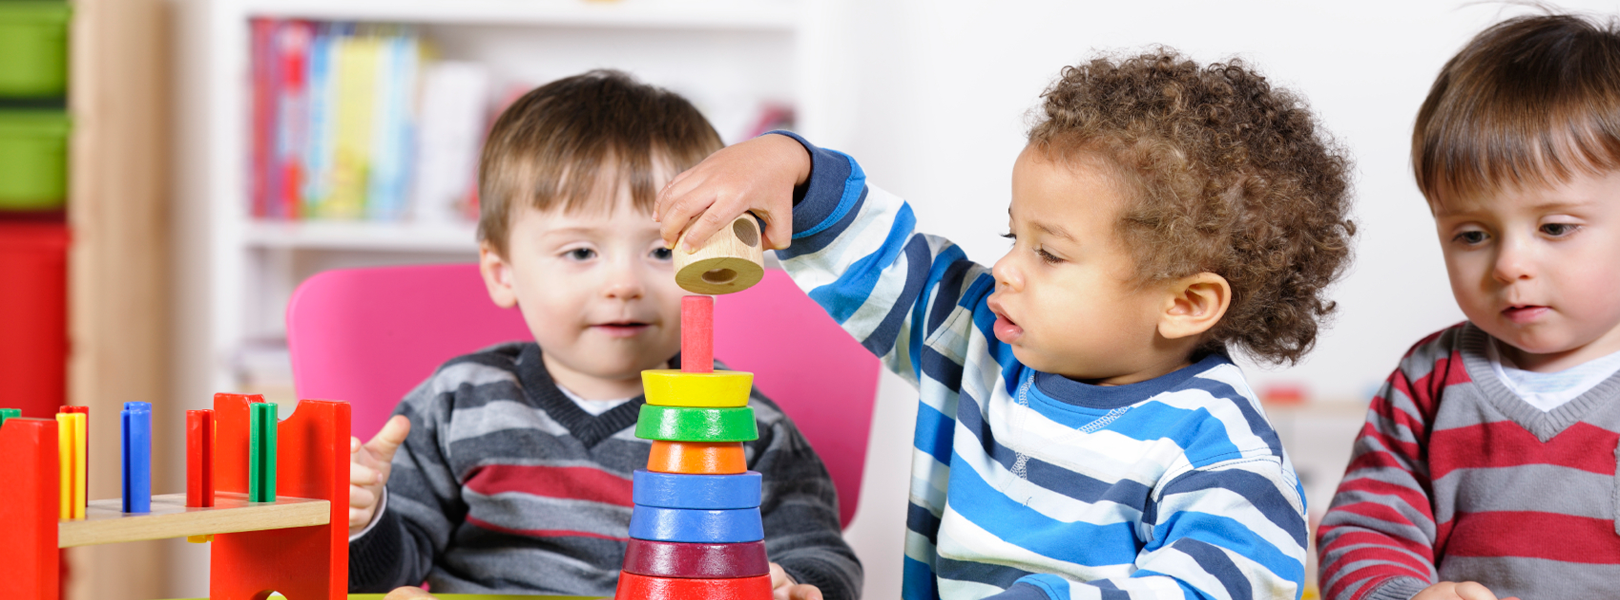 a look at the importance of play on the development of children Play is an important part of your child's development and it begins early learn the different skills children learn and develop through play.